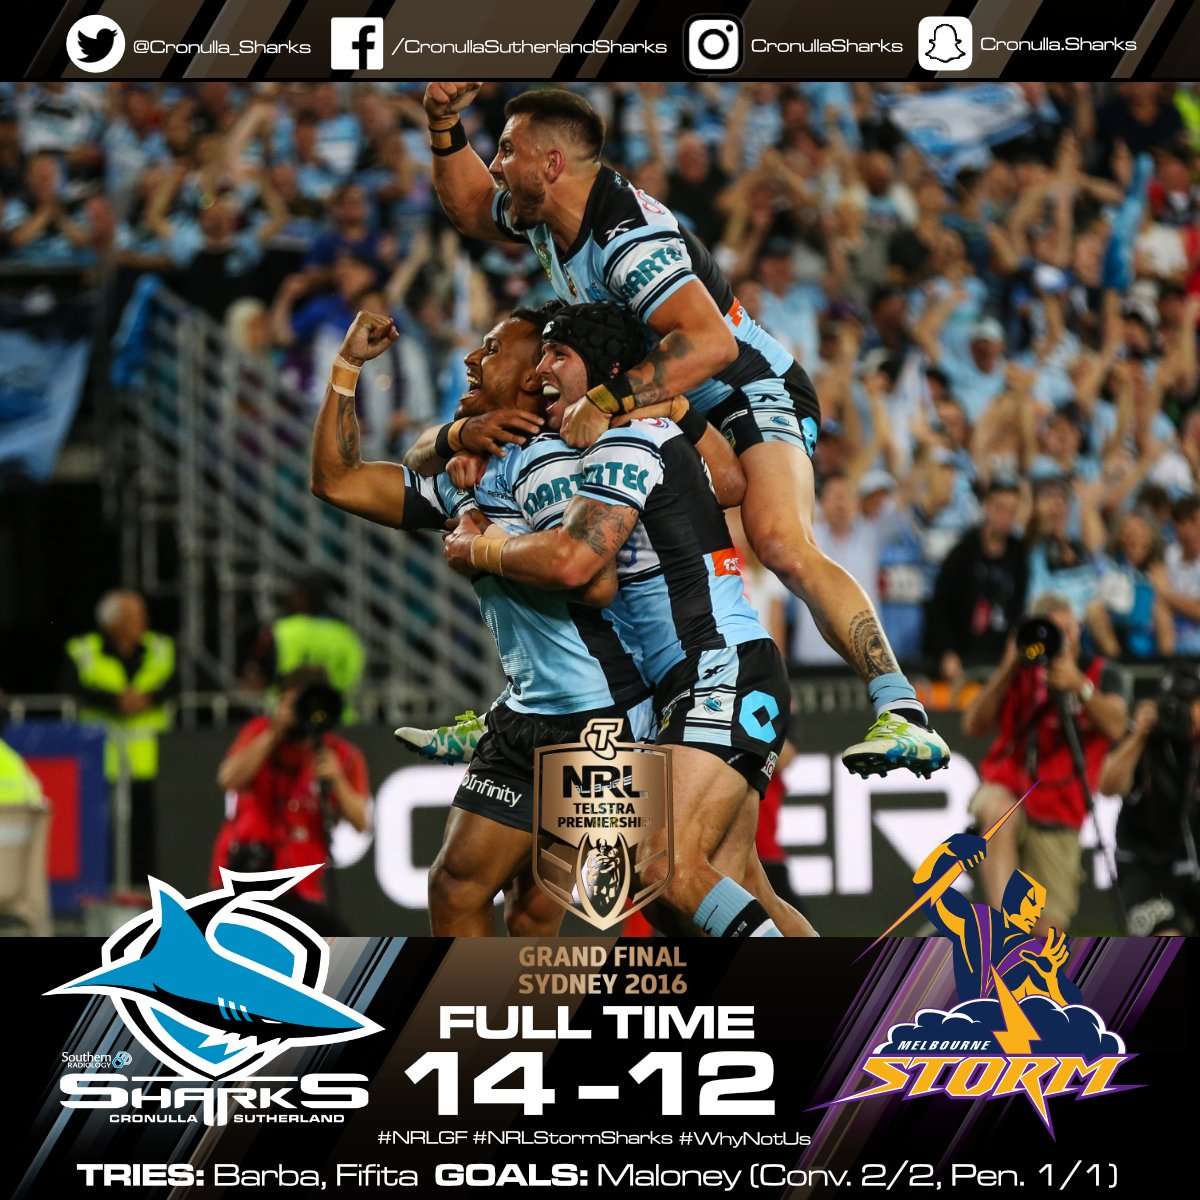 FULL TIME! 49 YEARS IN THE MAKING. UP UP CRONULLA! #NRLGF #WhyNotUs https://t.co/Xjbcx0KxBN